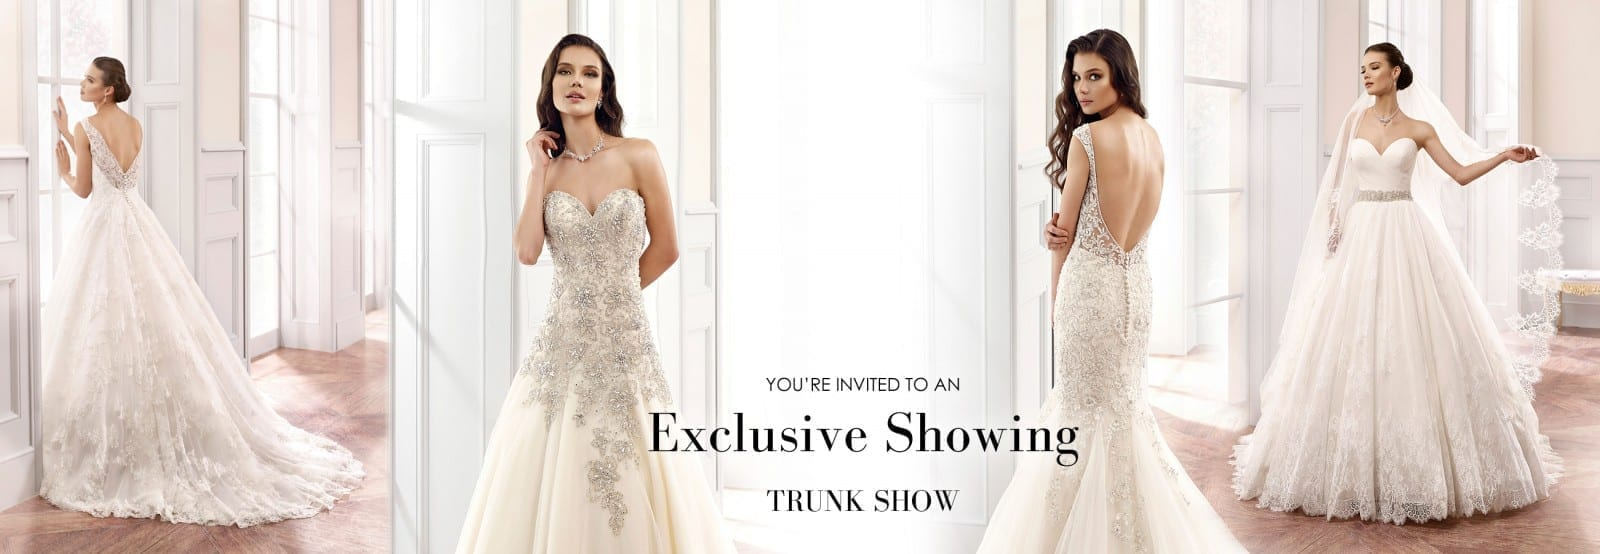 Trunk-show-page – Eddy K Bridal Gowns | Designer Wedding Dresses 2018